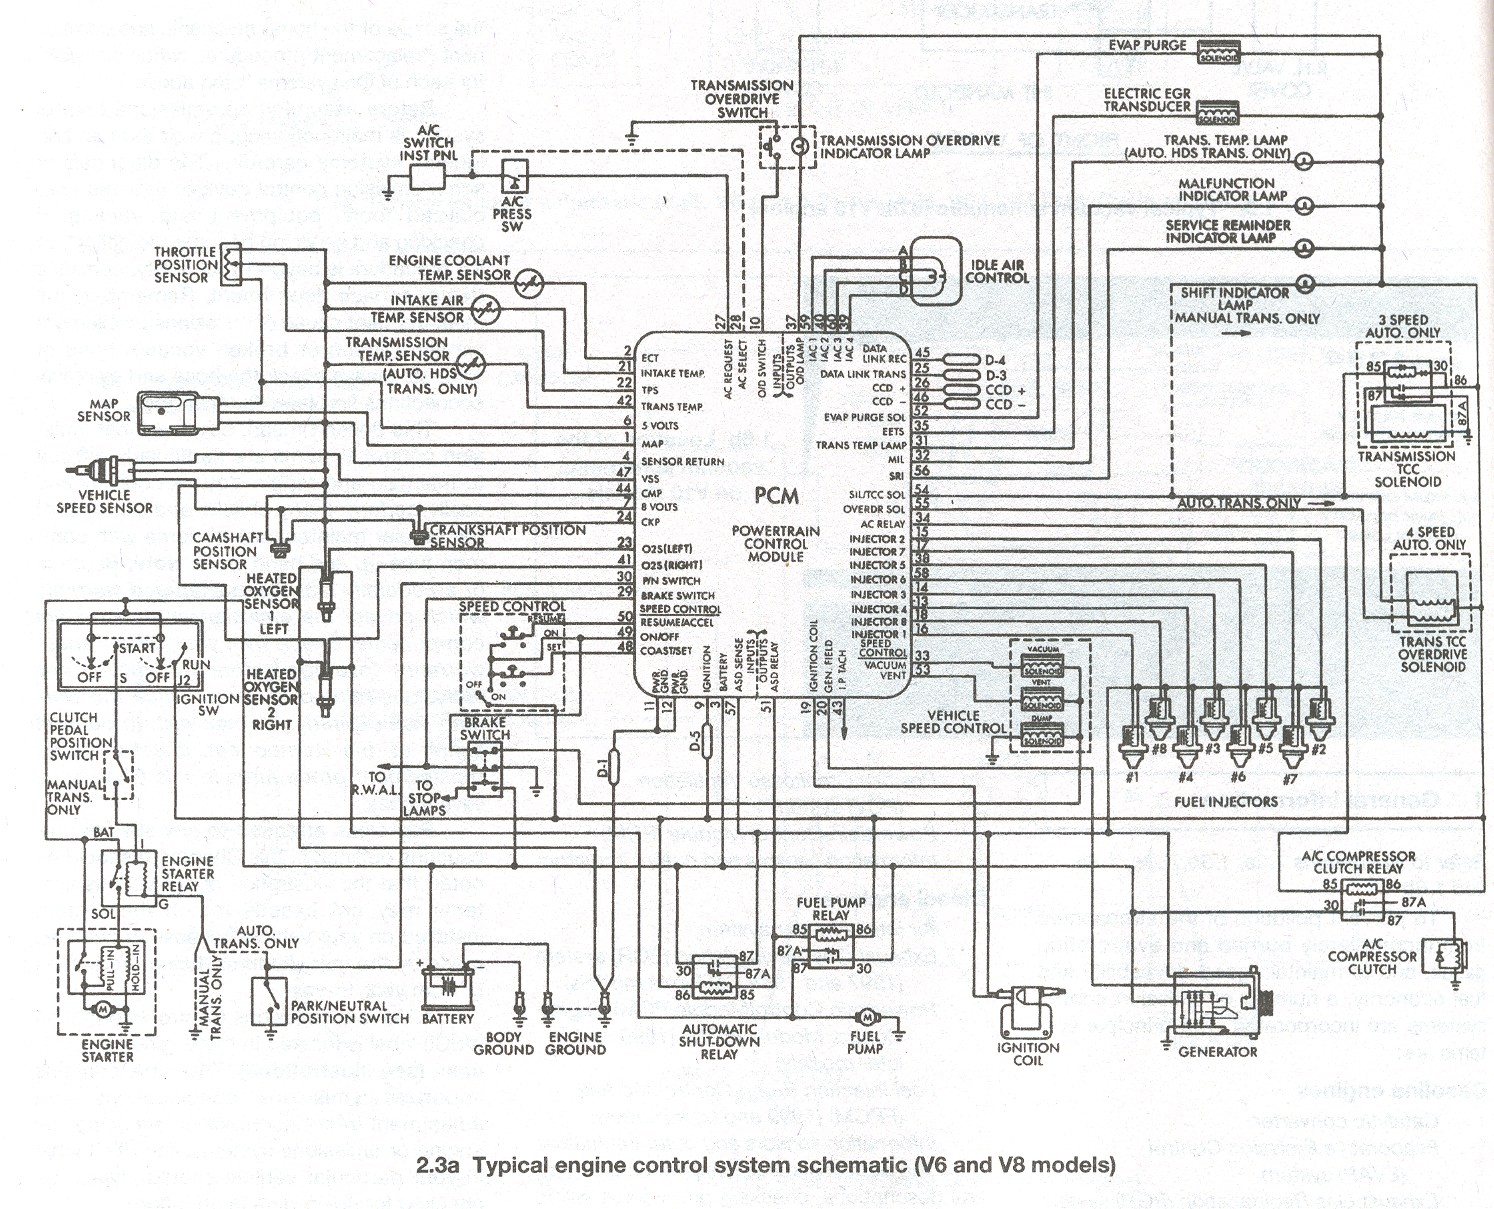 1969 volvo 164 wiring diagram